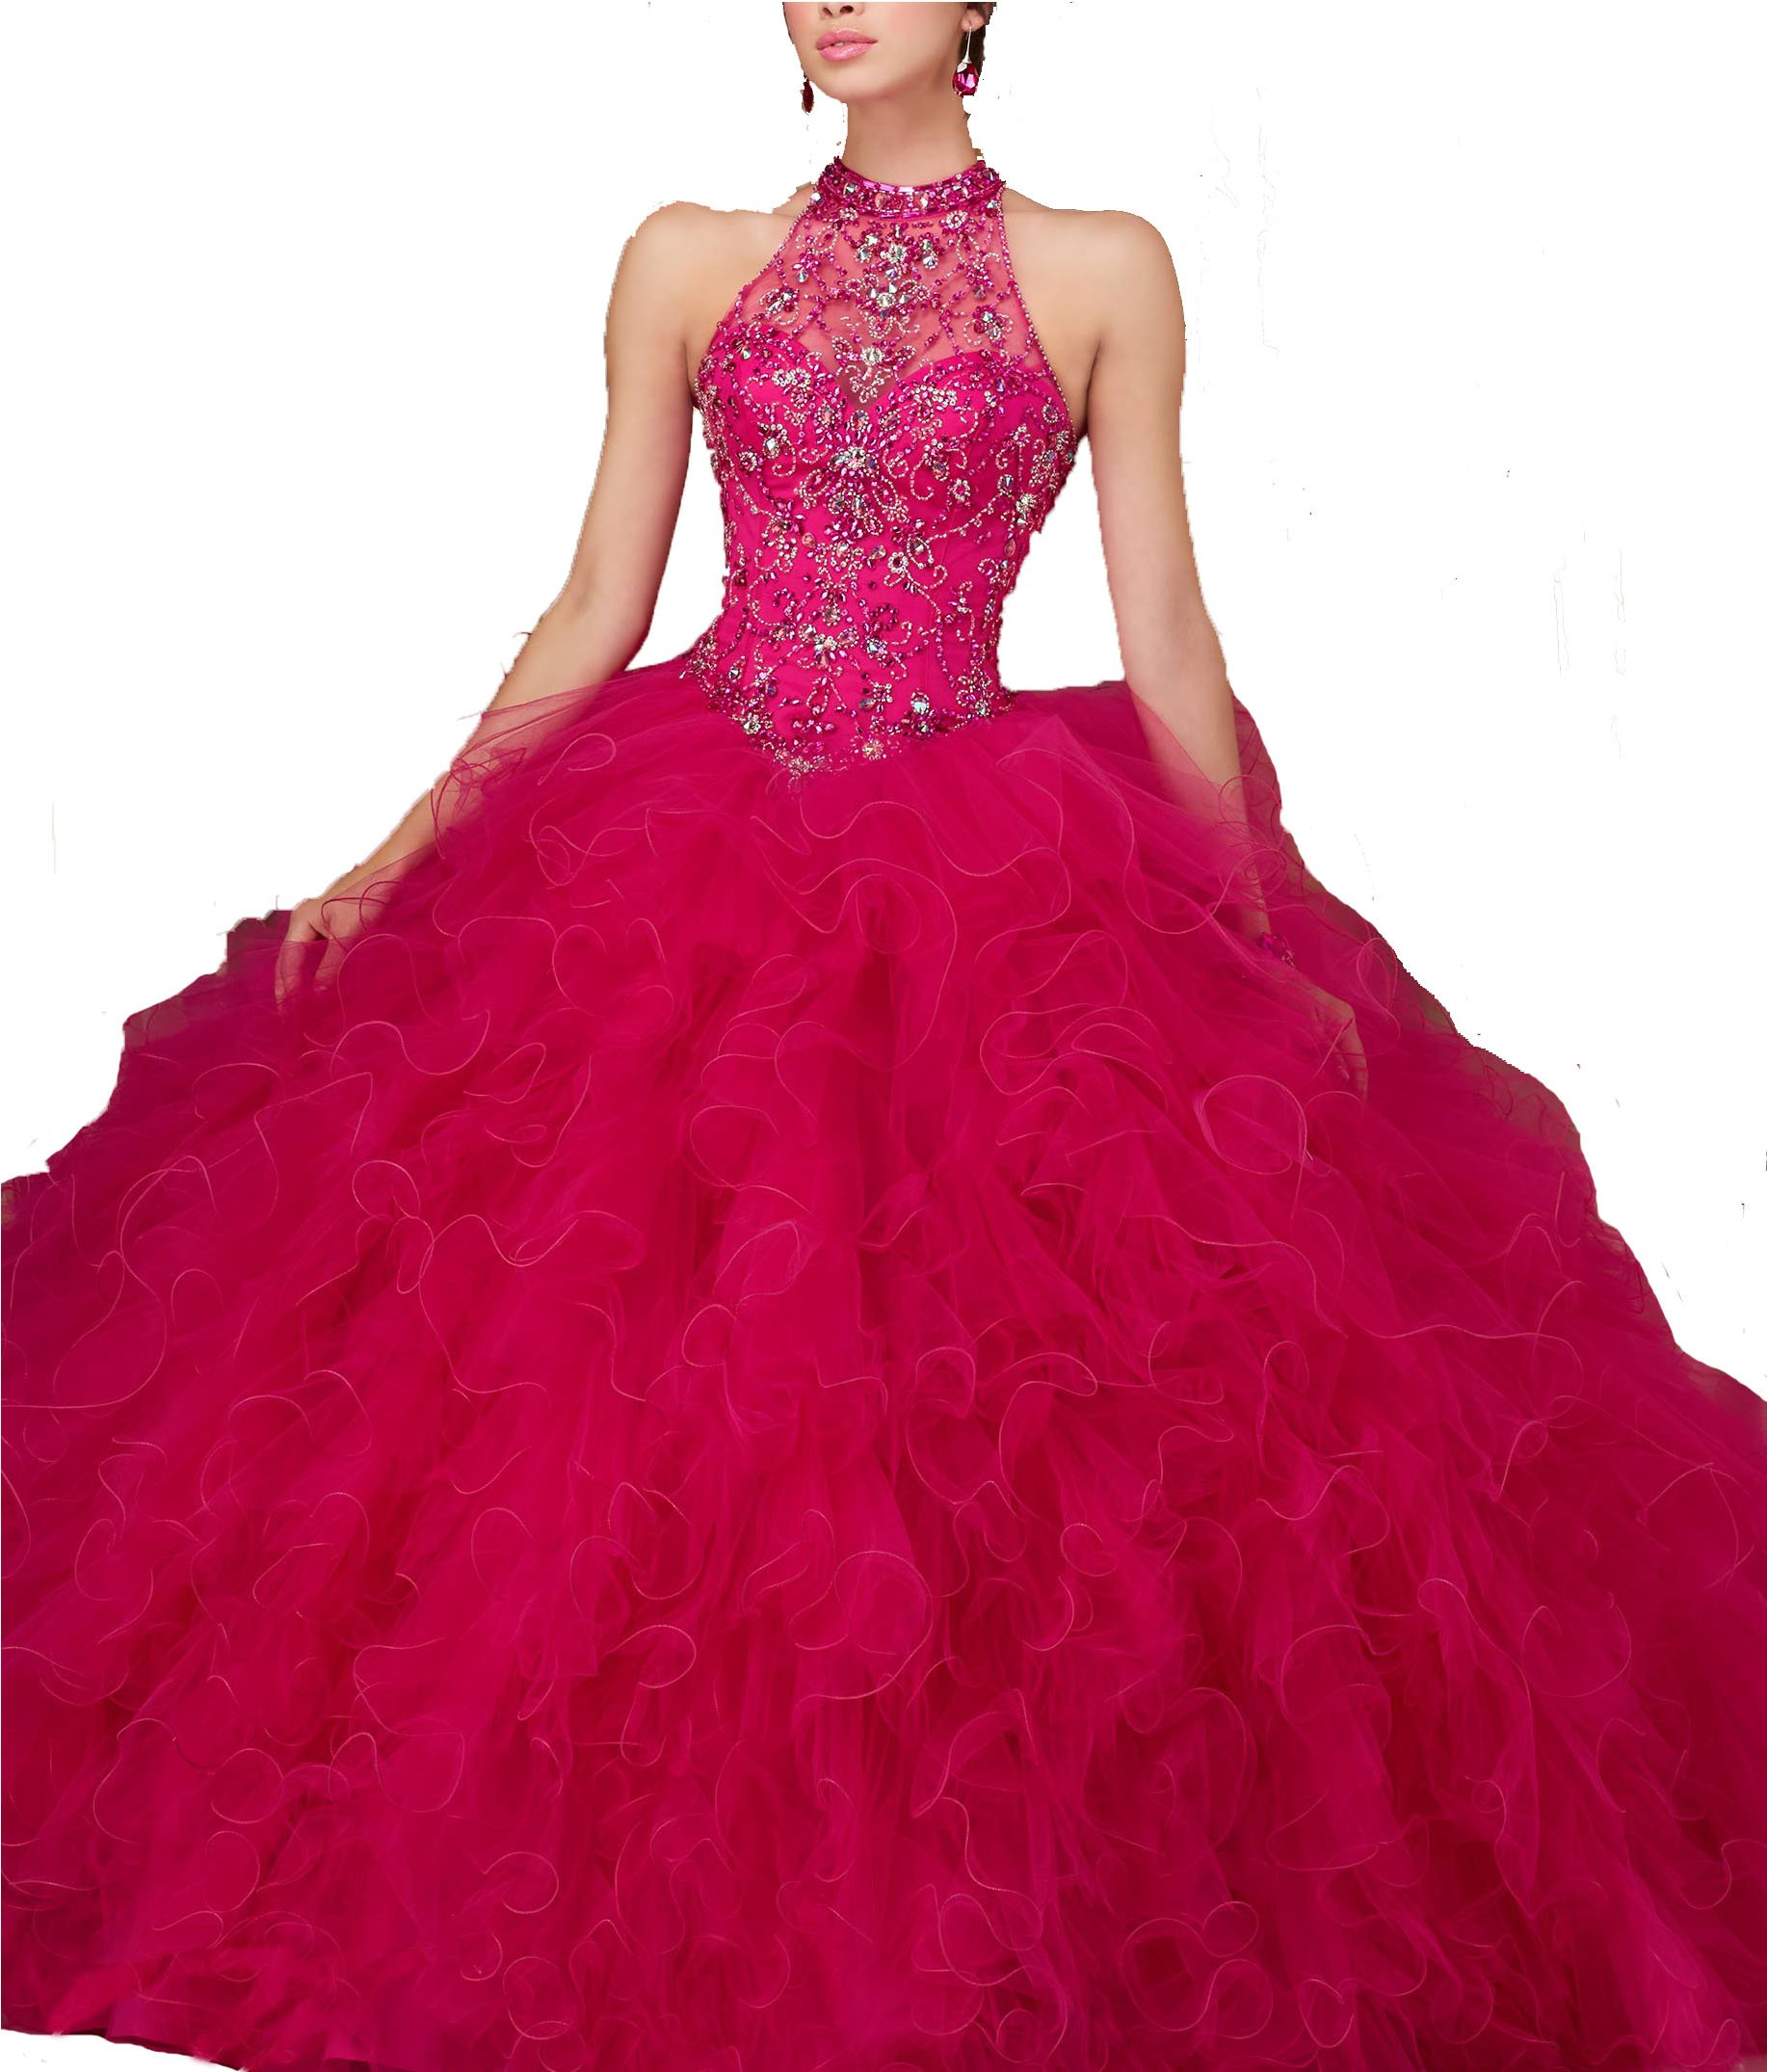 Ellenhouse Fuchsia Beaded Quinceanera Dress Halter Prom Ball Gowns With Tulle Jacket US10 by Ellenhouse